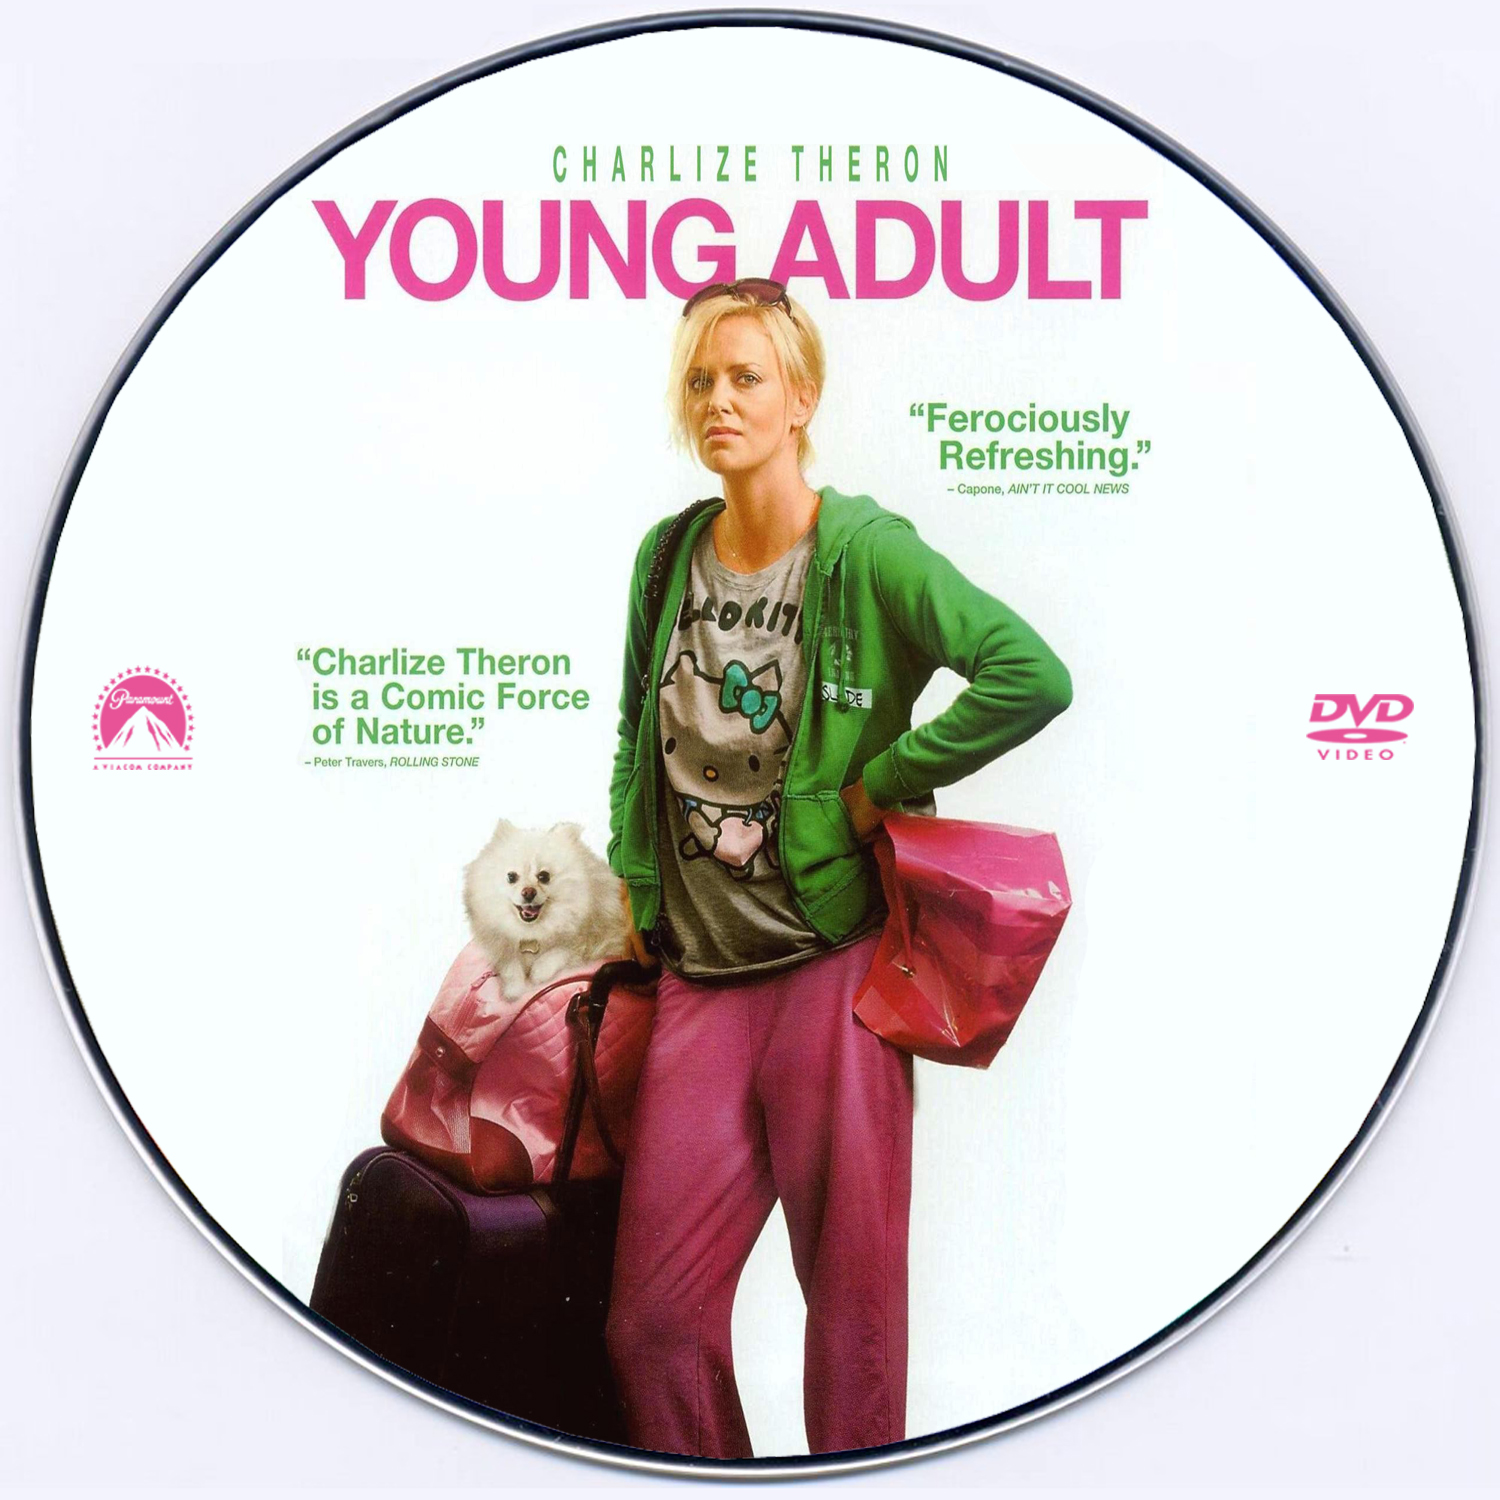 Adult cover dvd movie